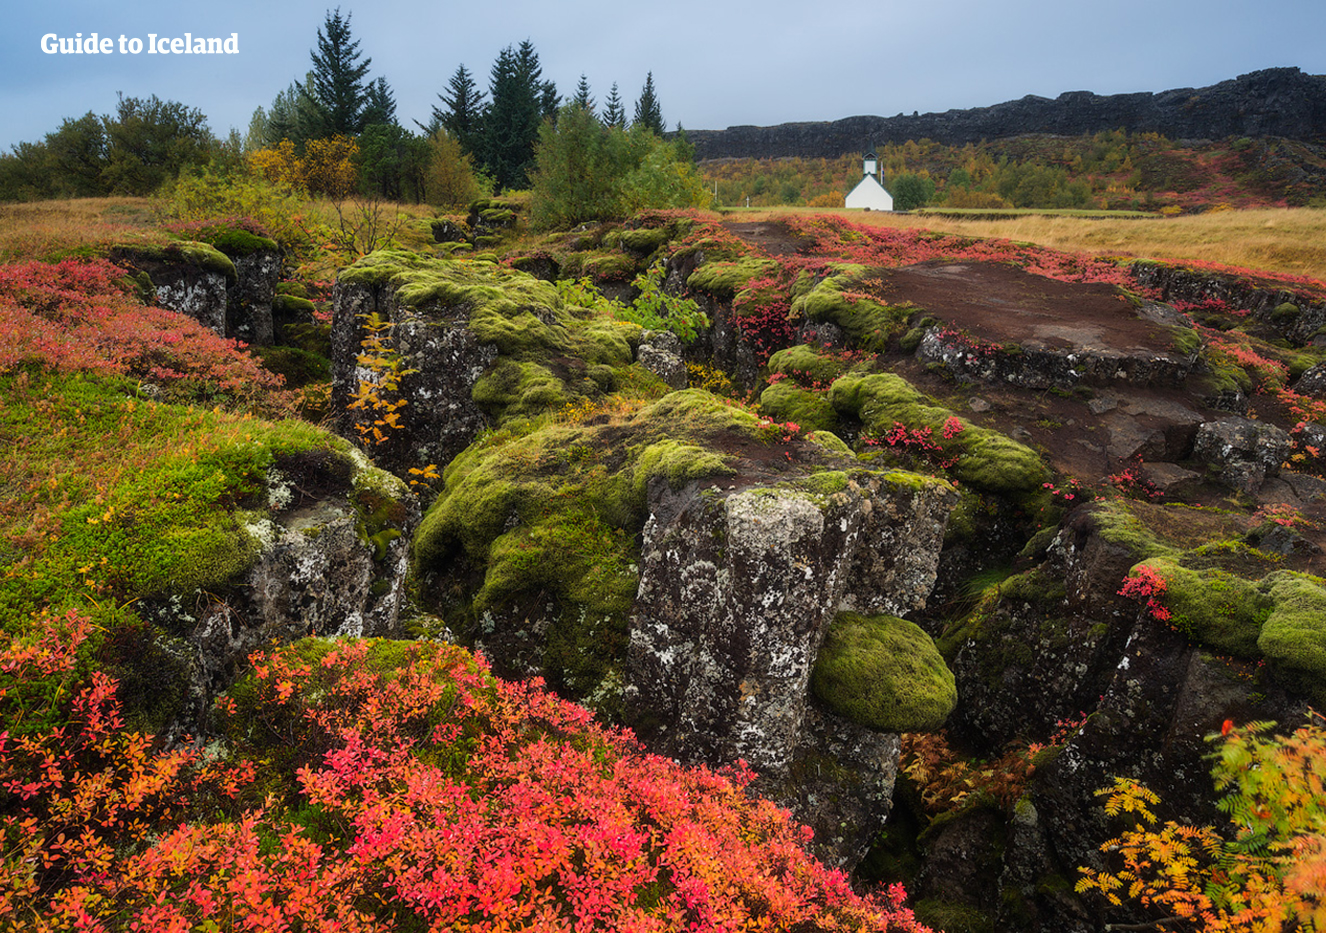 10 Day Summer Package | Guided Tour Around Iceland with Free Days in Reykjavik - day 3